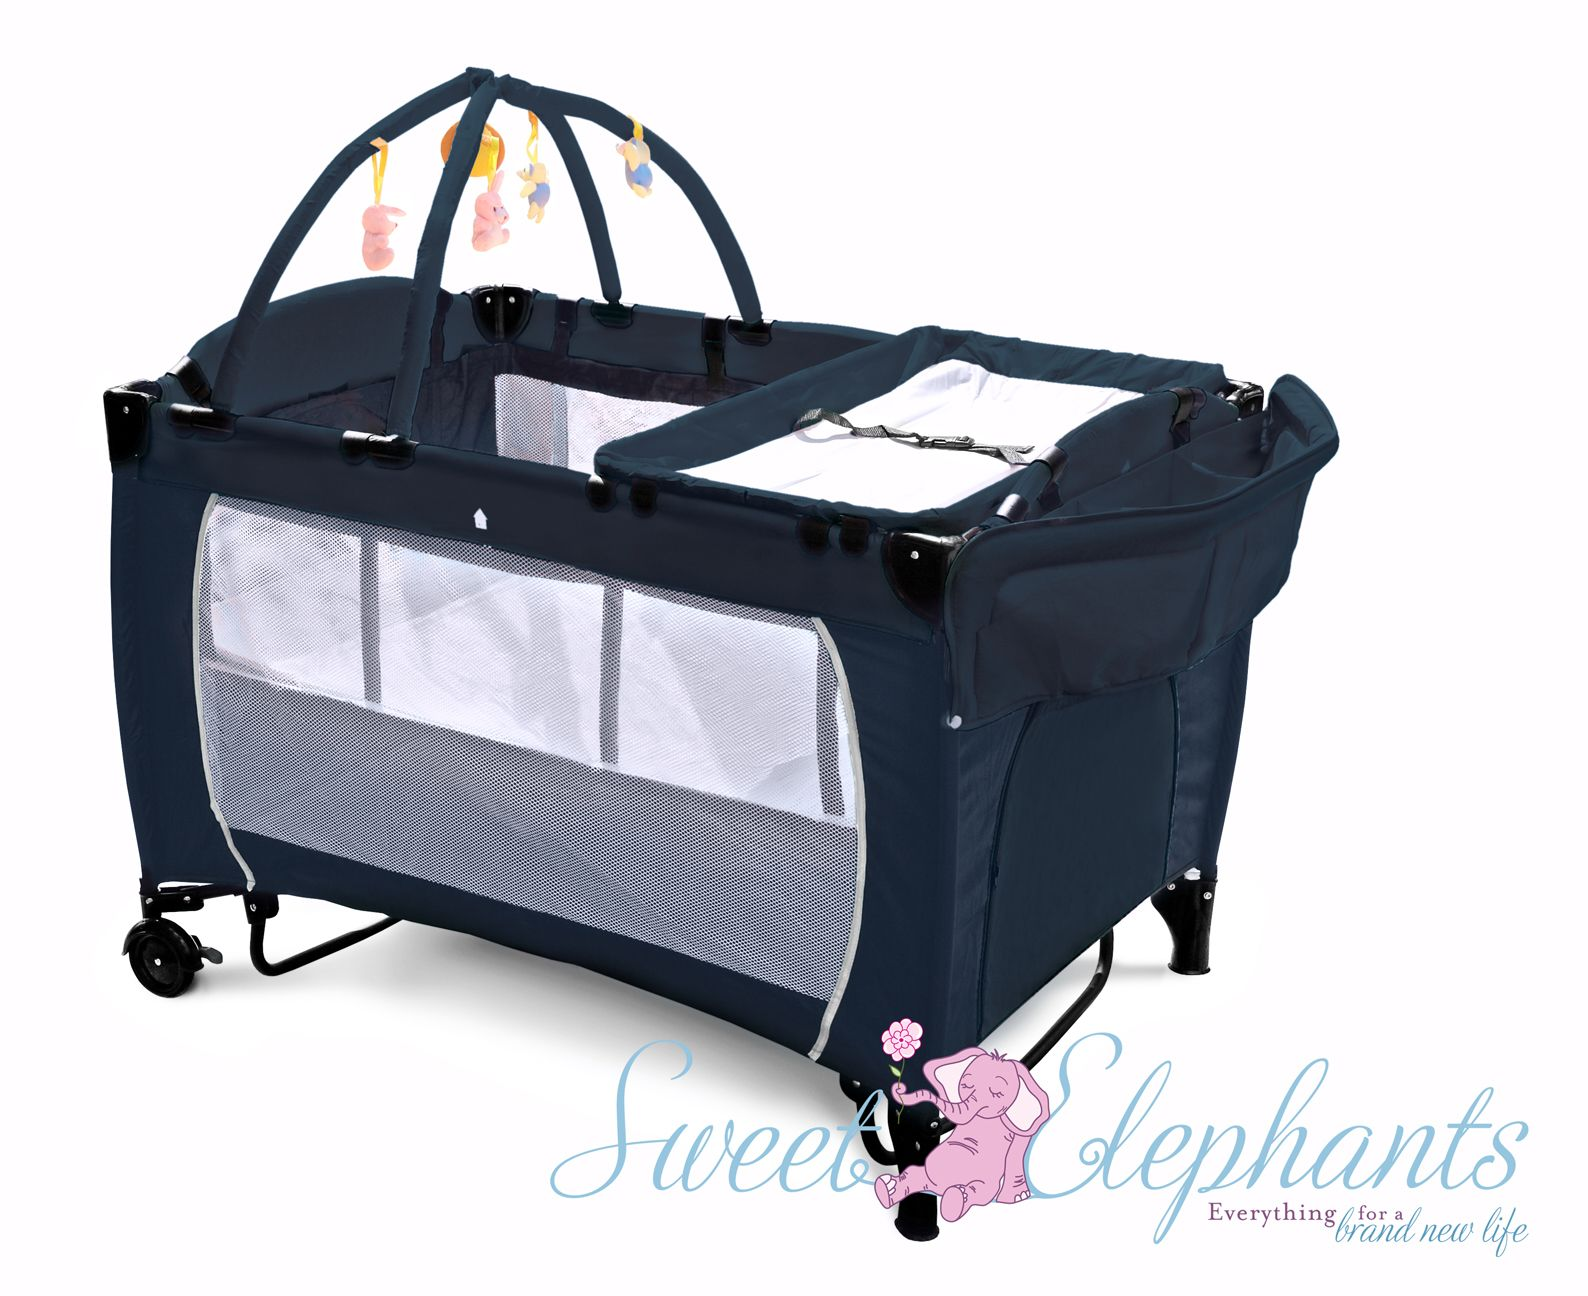 Portable Cot The Ultimate Travel Cot For Baby Sweet Elephants Portable Changing Table Bassinet Portable Bassinet